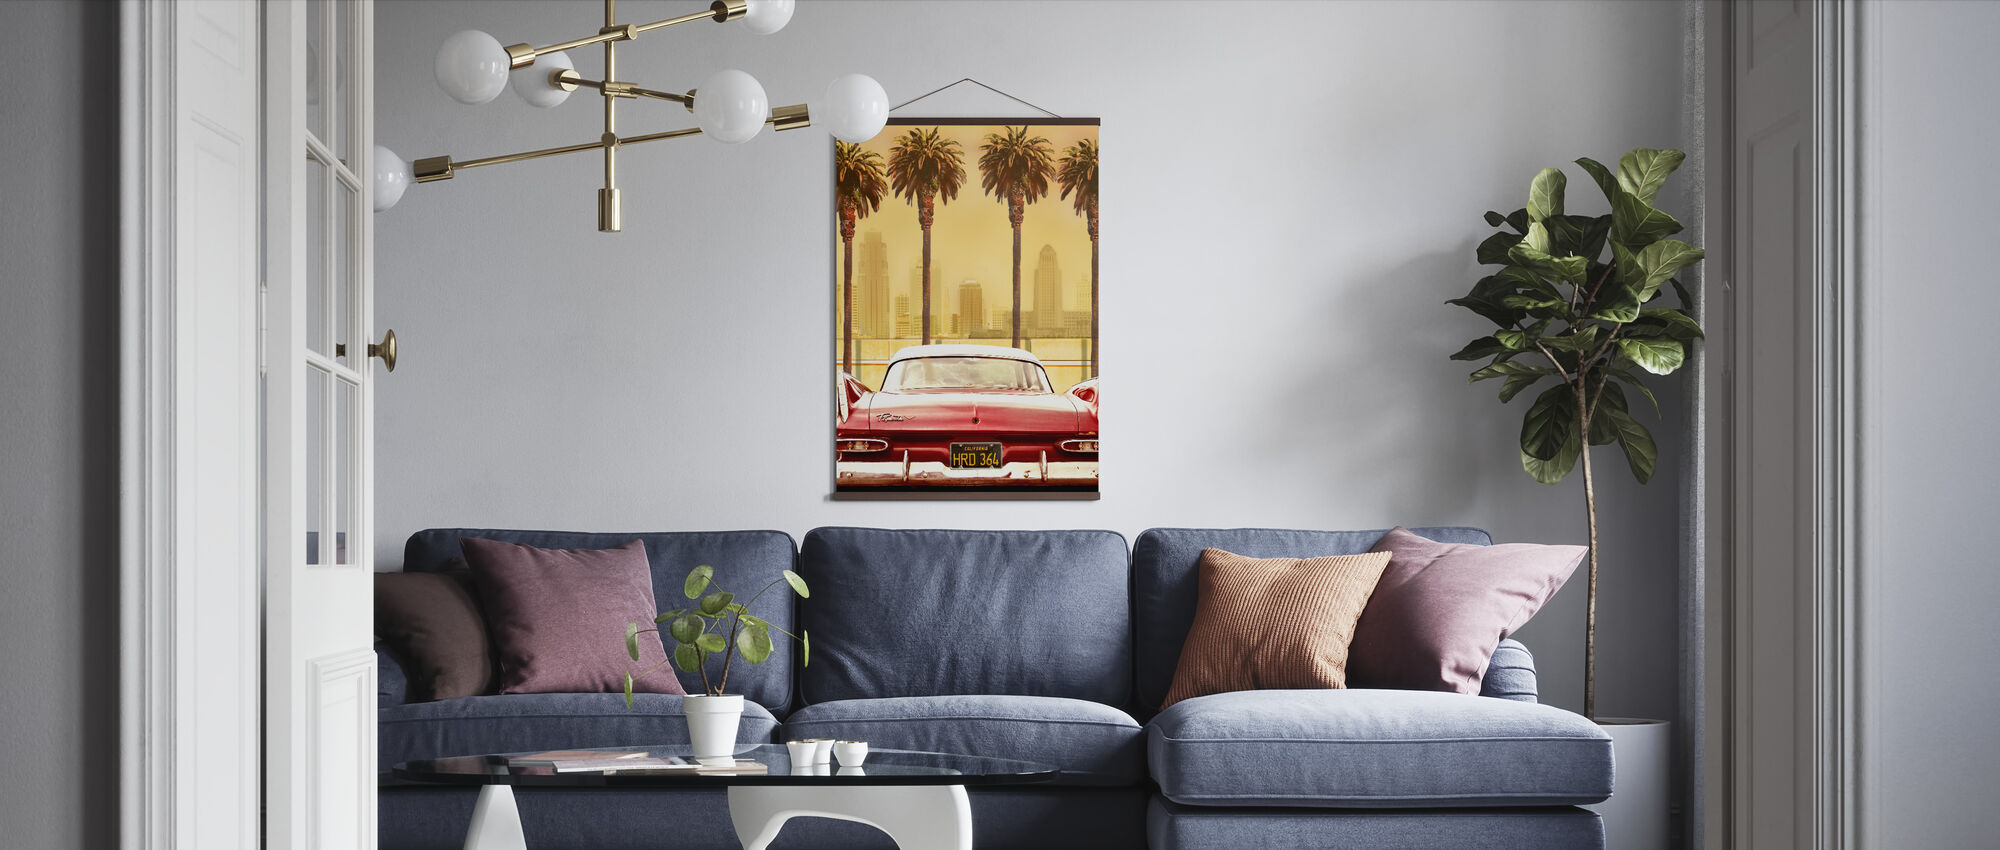 Plymouth Savoy with Palms - Poster - Living Room